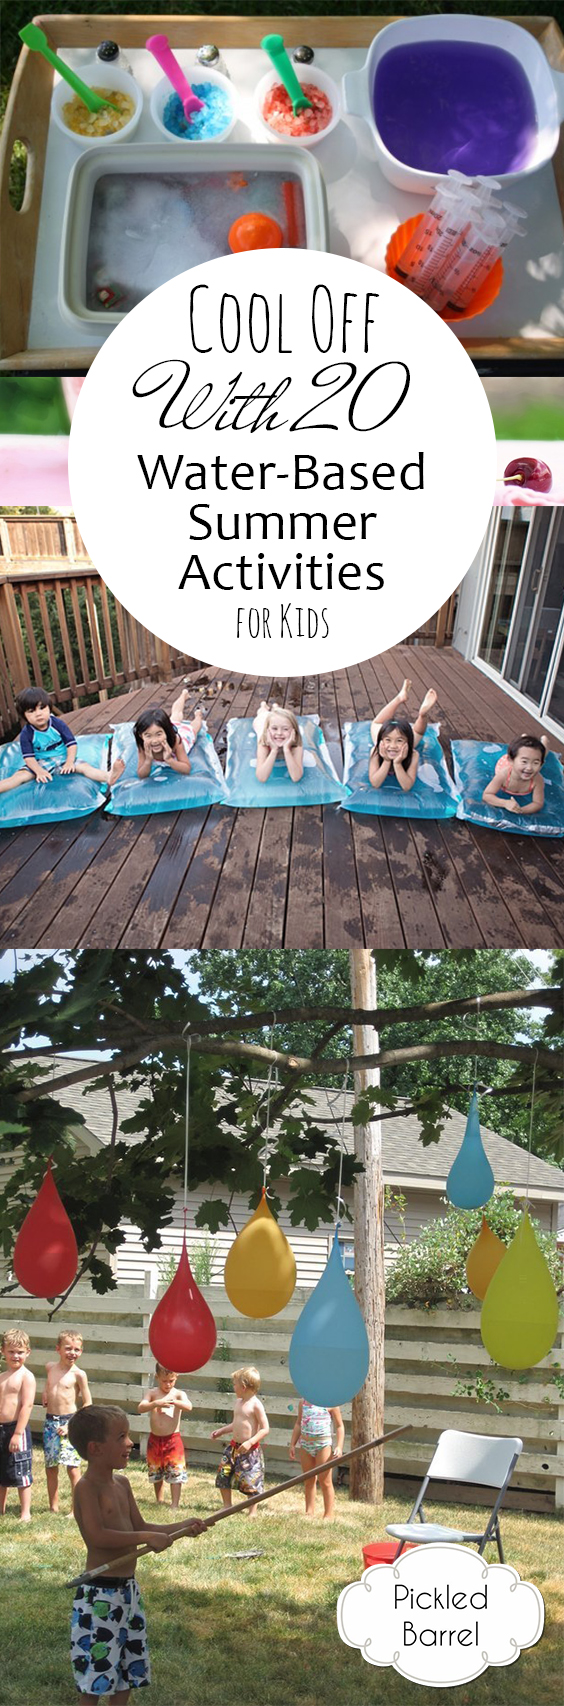 Cool Off With 20 Water-Based Summer Activities for Kids| Summer Activities, Summer Fun for Kids, Kid Stuff, Fun Stuff for Kids, Summer Fun for Kids, Fun Stuff for Kids, Summer Activities for Kids, Popular Pin #summer #activitiesforkids #kidstuff #summerfun #craftsforkids #easycraftsforkids